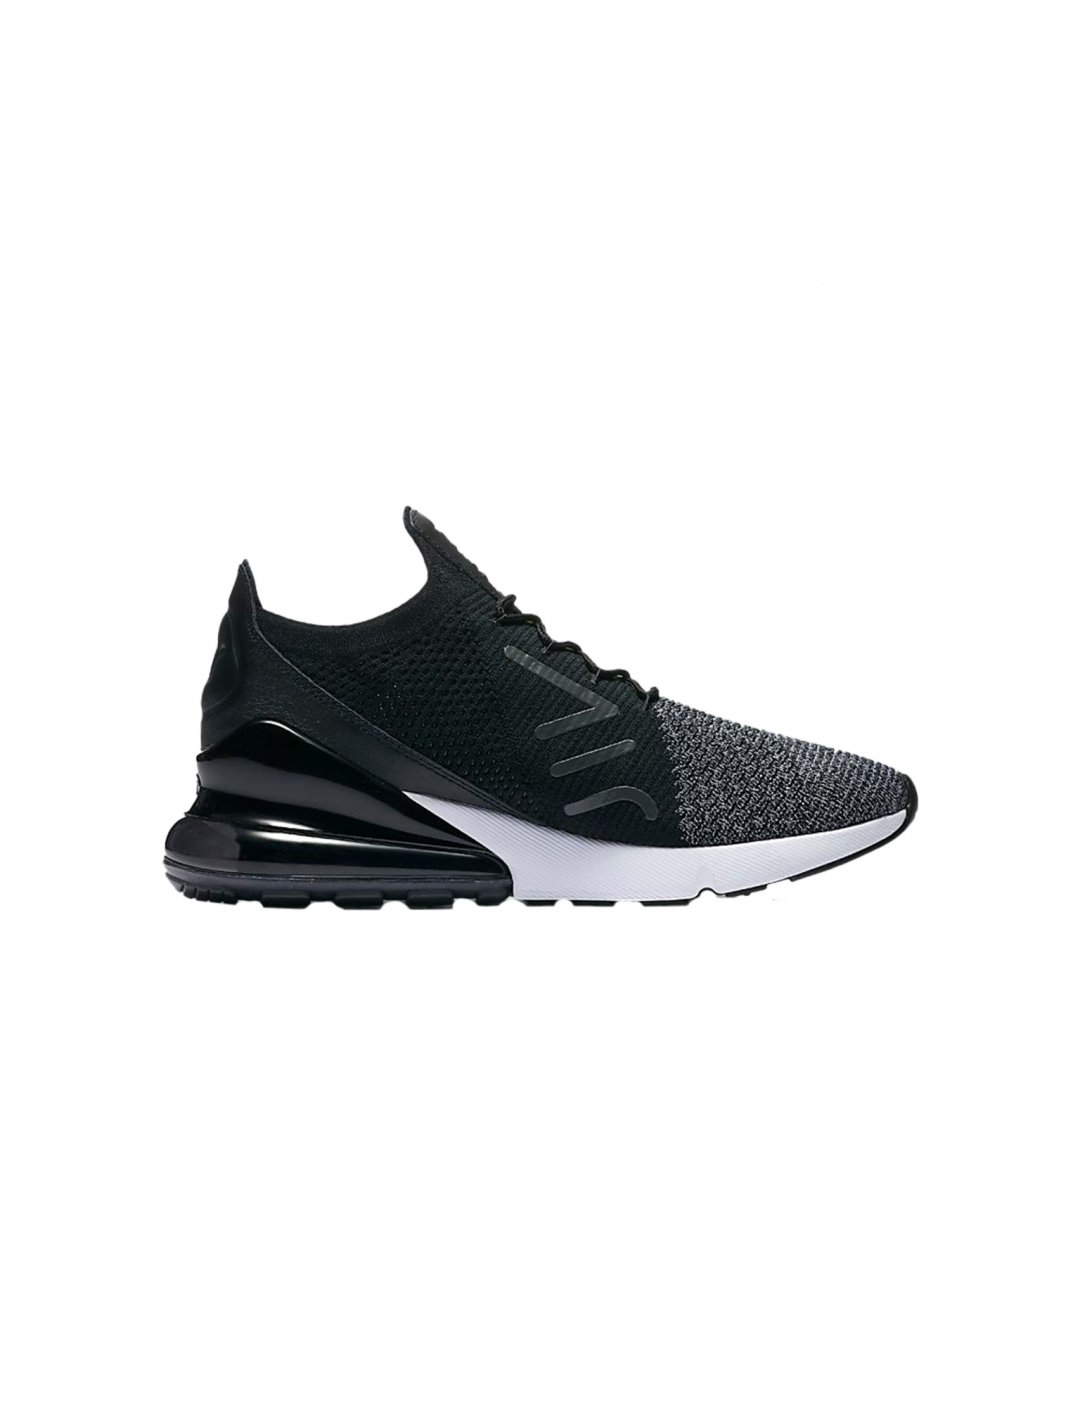 "Jammin's Nike Air Max 270 Flyknit {""id"":12,""product_section_id"":1,""name"":""Shoes"",""order"":12} Nike"